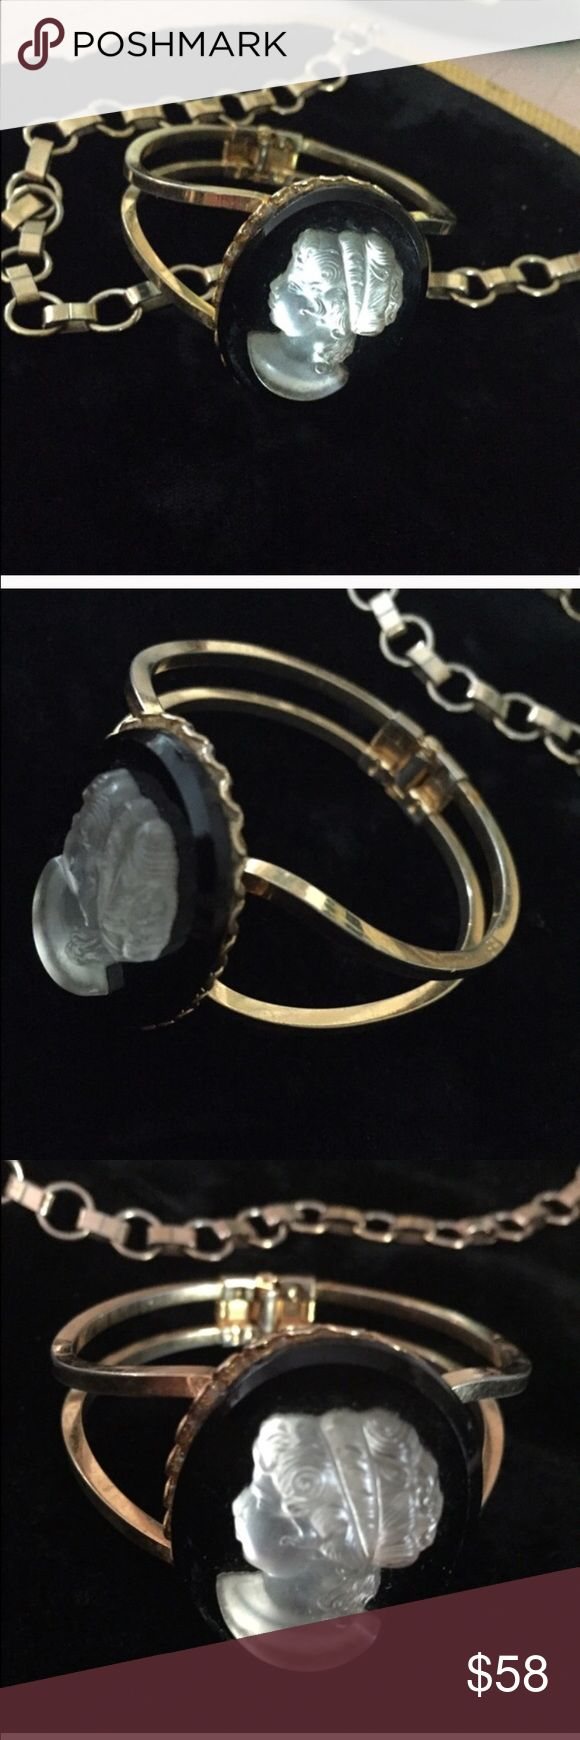 "VTG Black & Frosted Glass Cameo Bracelet Beautiful Vintage retro Clamper Cuff BRACELET with a Frosted Glass Cameo on top of a black resin disc on a gold-tone clamper bracelet. SPRING LOADED HINGE. Hidden front opening SPREADS APART to place on your wrist. Inside diameter measures 6-1/2"", so if you measure your wrist you can compare for fit. Cameo measures 1-3/4"" x 1-1/4"". No maker's mark. In excellent preowned vintage condition! Vintage Jewelry Bracelets"